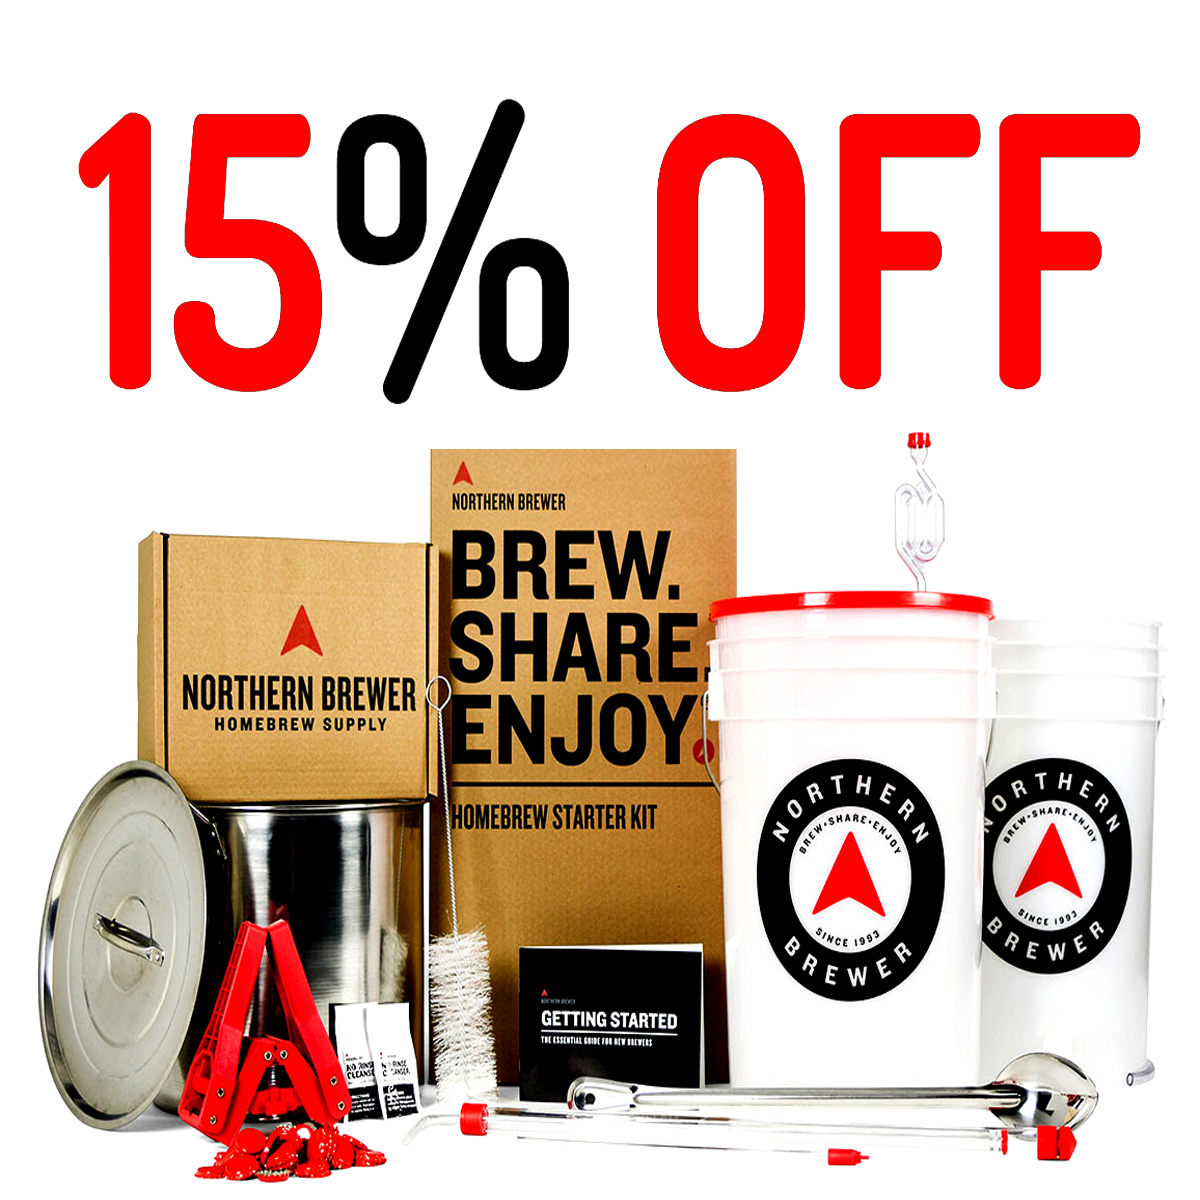 Midwest Supplies Use Midwest Supplies Promo Code BSE and Save 15% On A Homebrewing Kit Coupon Code